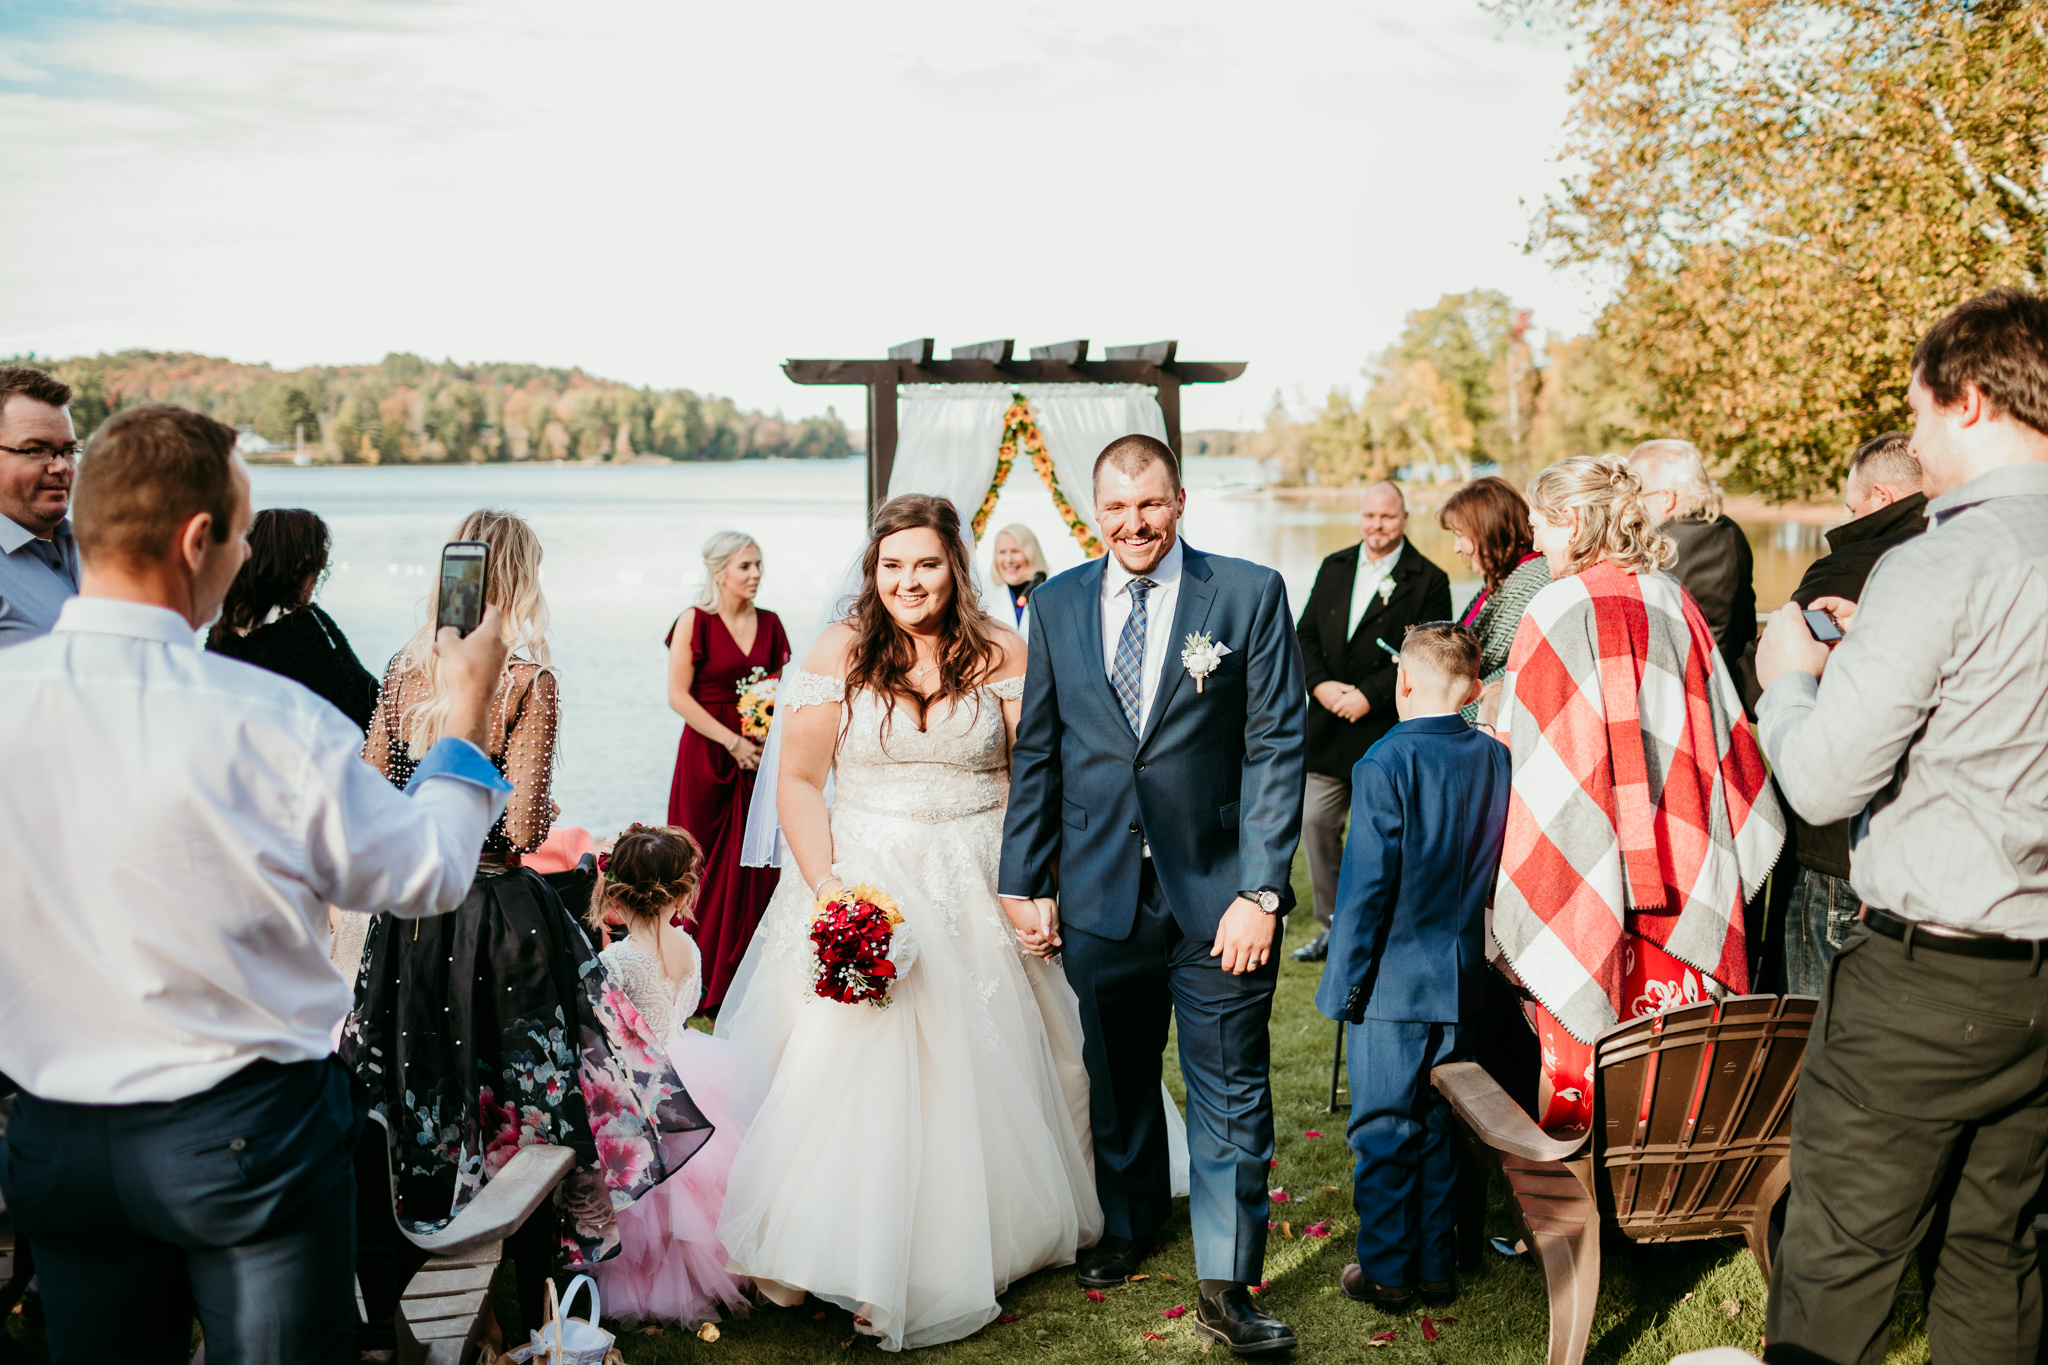 bride and groom walking down the aisle outdoors in fall at lakeside ceremony